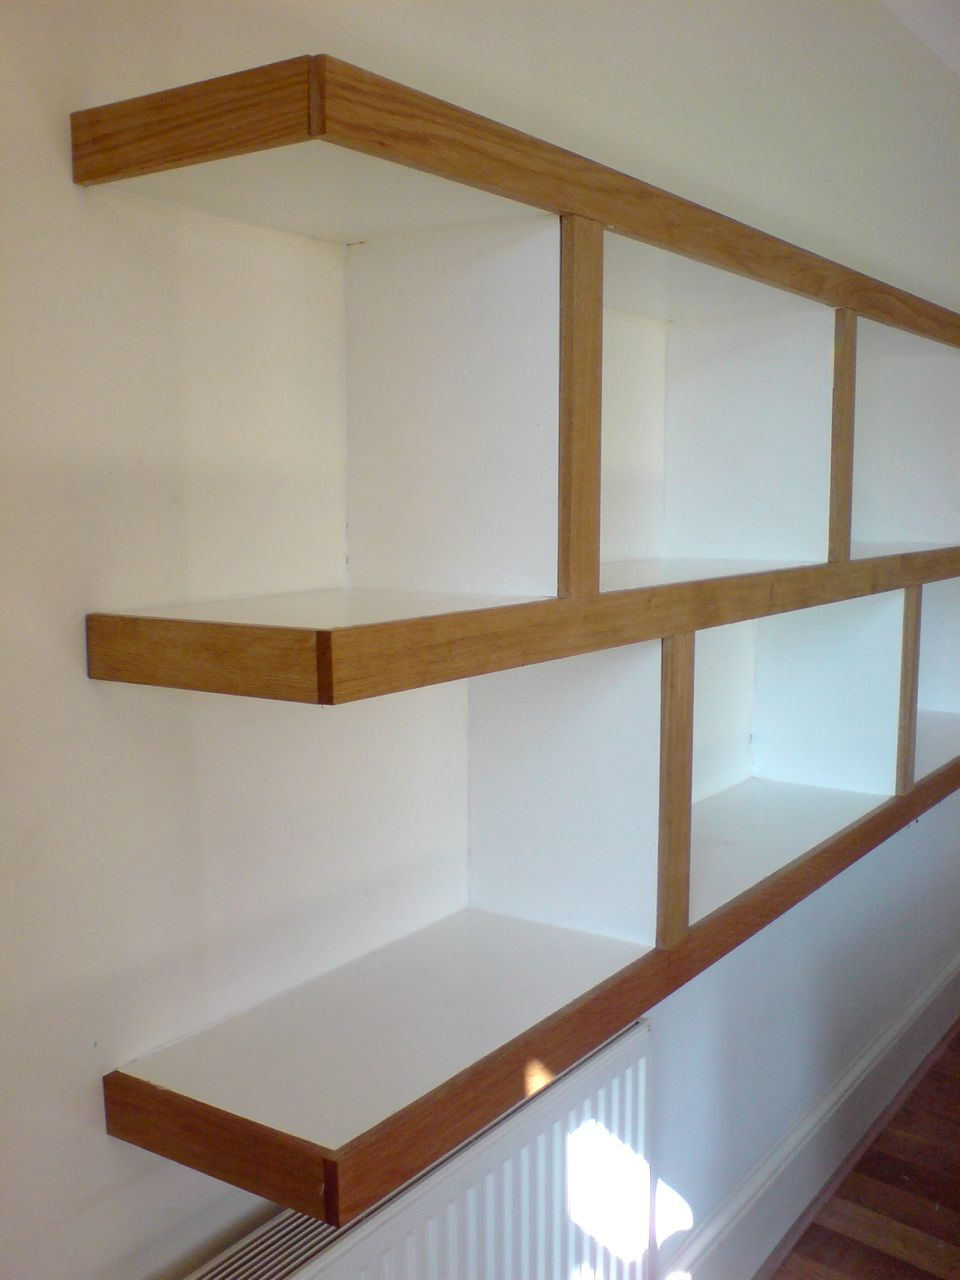 Alcove Shelves Brackets: Floating shelf with desk. Gallery of white ...